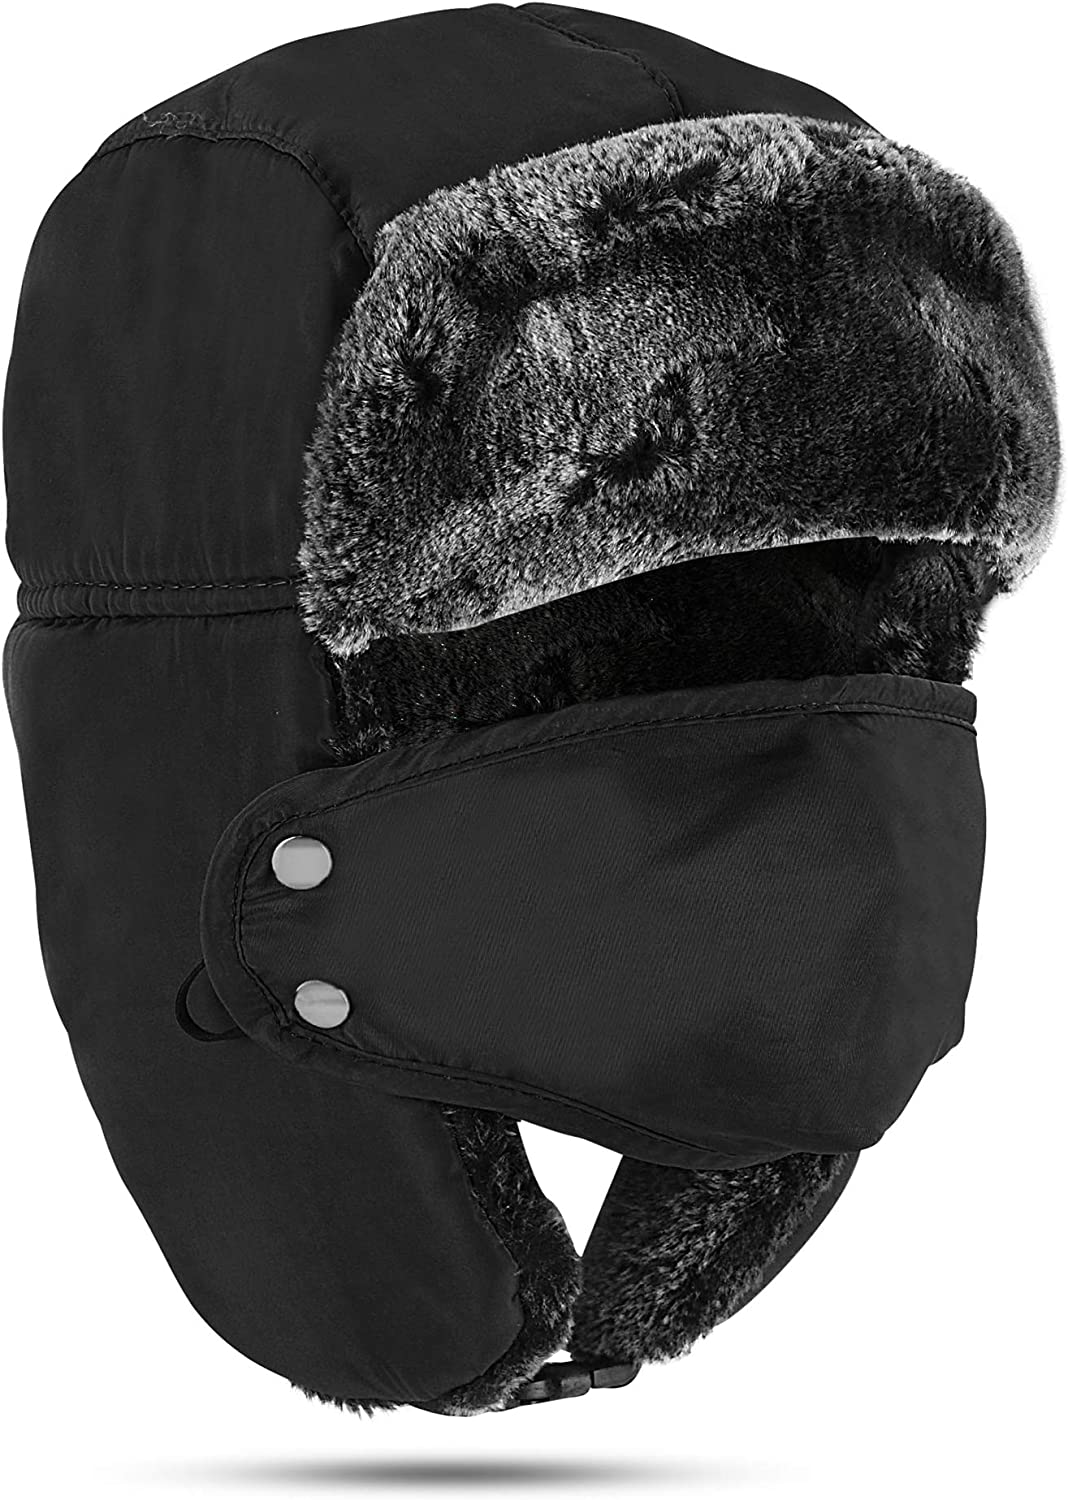 Winter Face Mask For Men - Russian Style Hat Ushanka, Trooper, Trapper Hats for Men and Women - Windproof Ski Mask